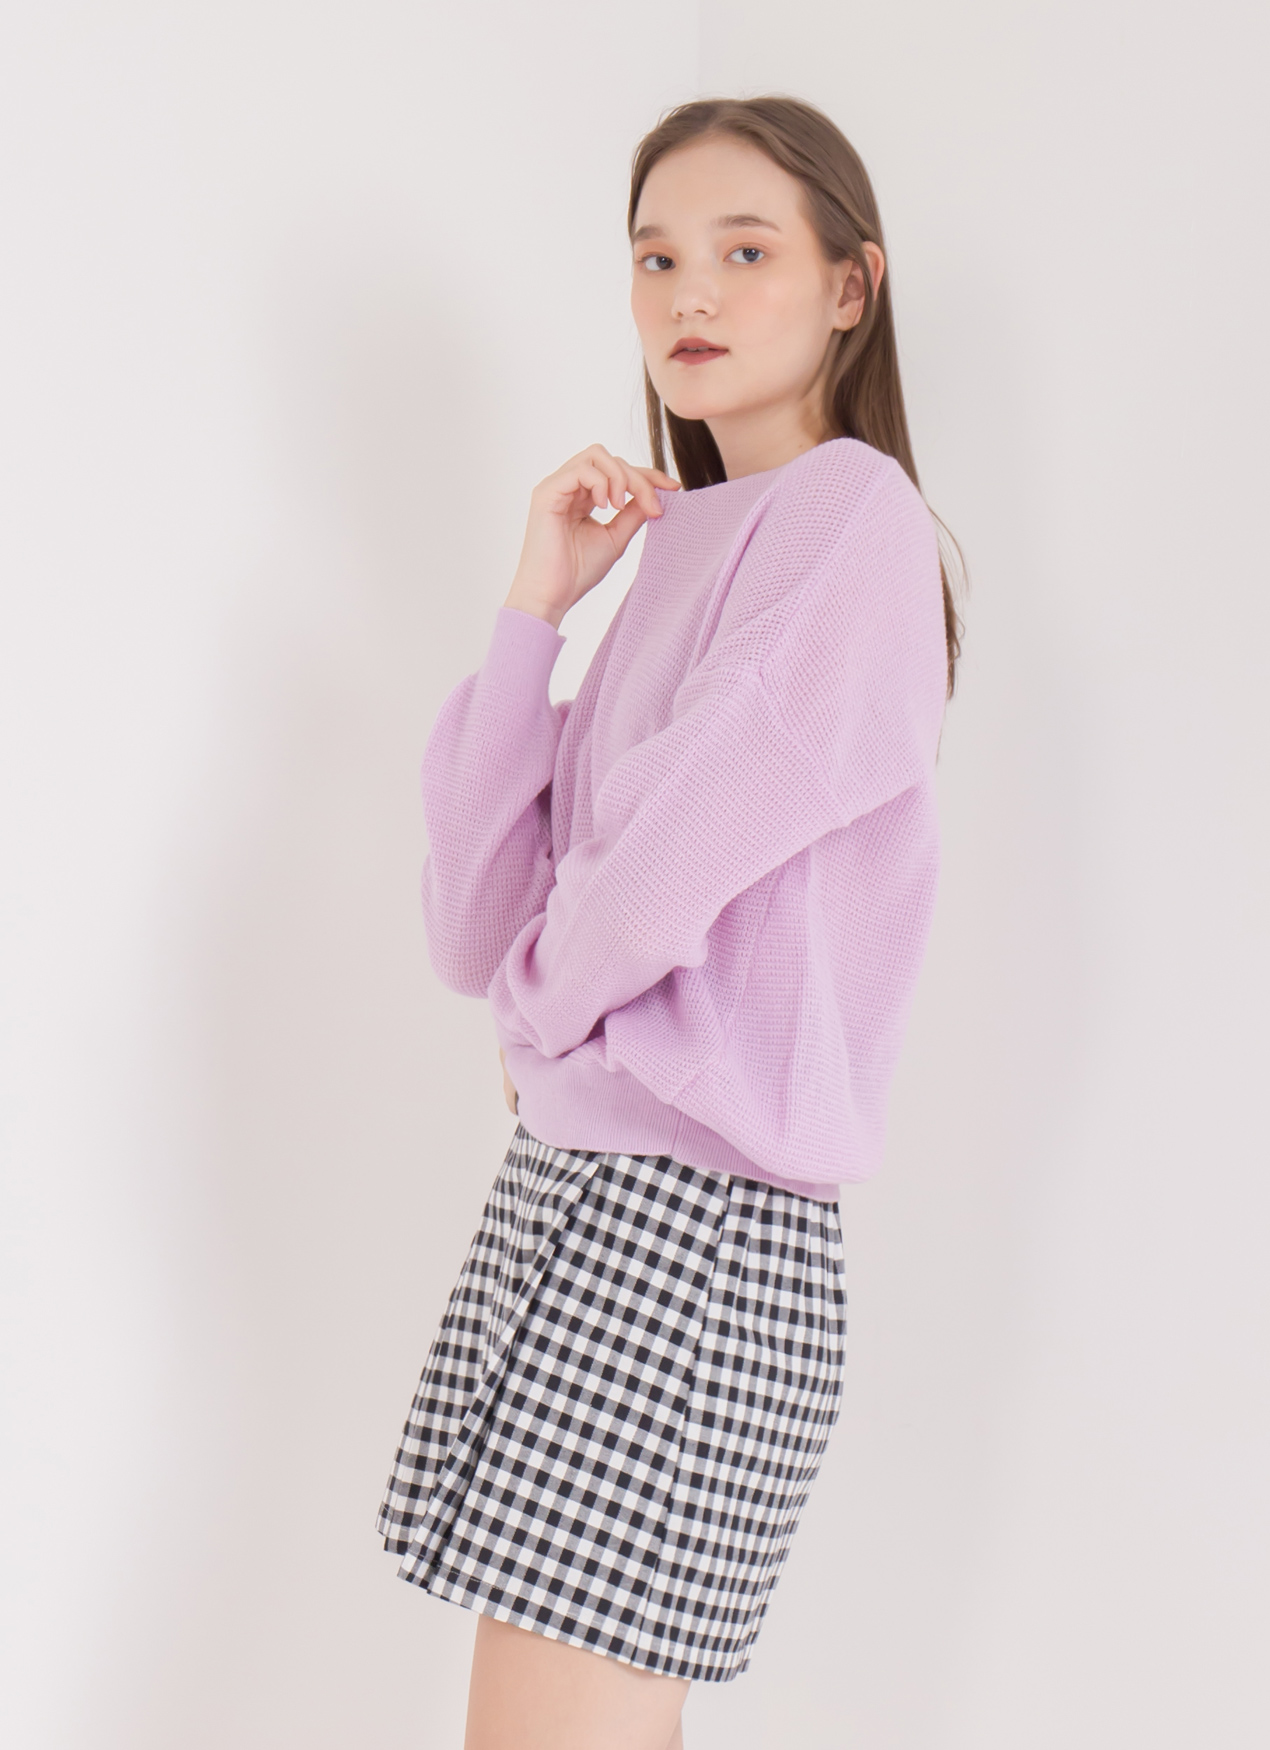 Green Parks Beatrice Sweater - Lavender